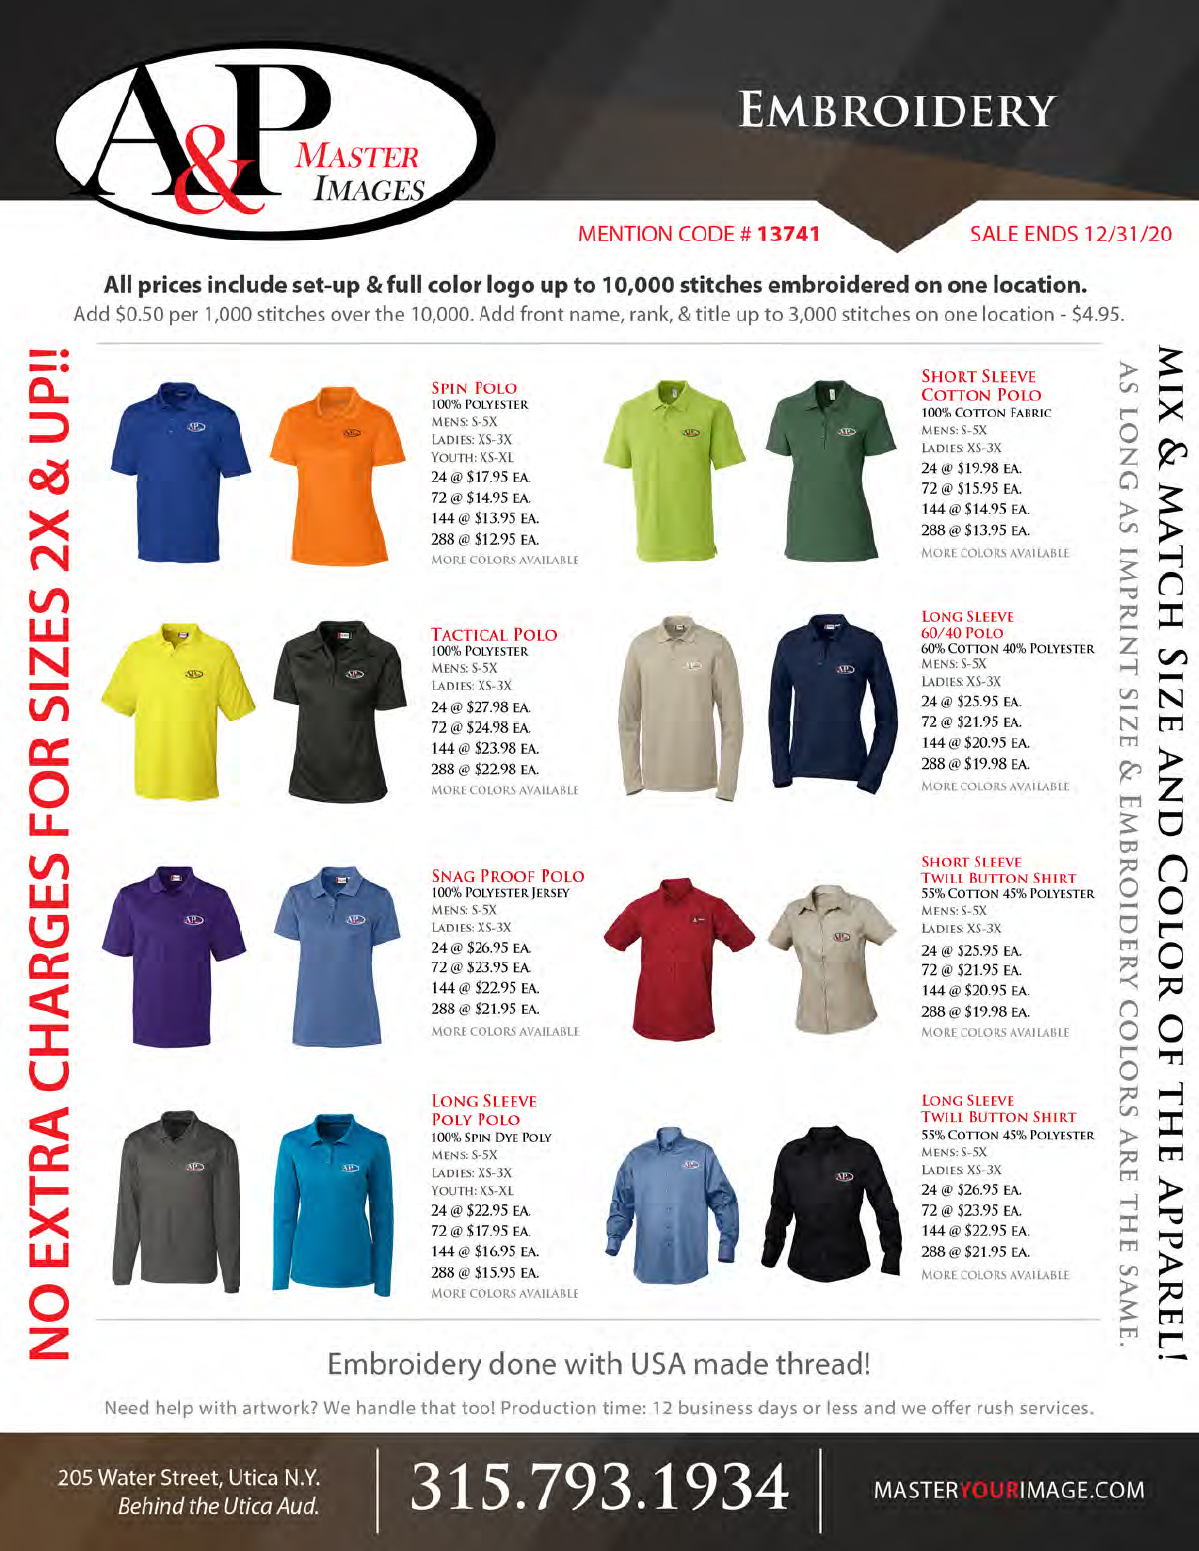 Sales Flyers - Embroidery 02